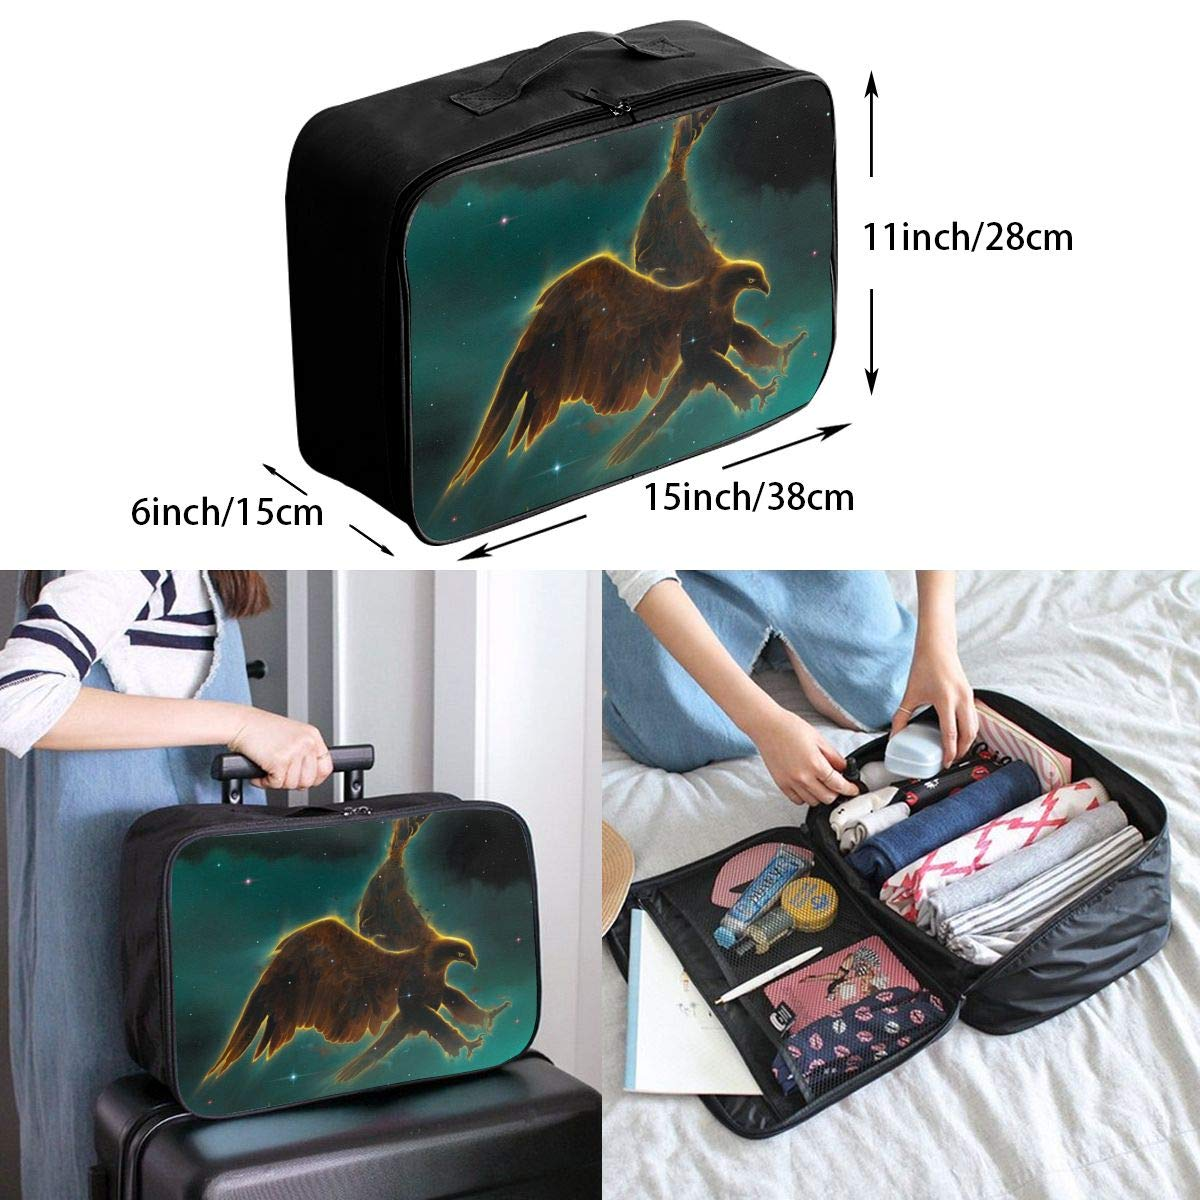 Travel Luggage Duffle Bag Lightweight Portable Handbag Space Eagle Pattern Large Capacity Waterproof Foldable Storage Tote